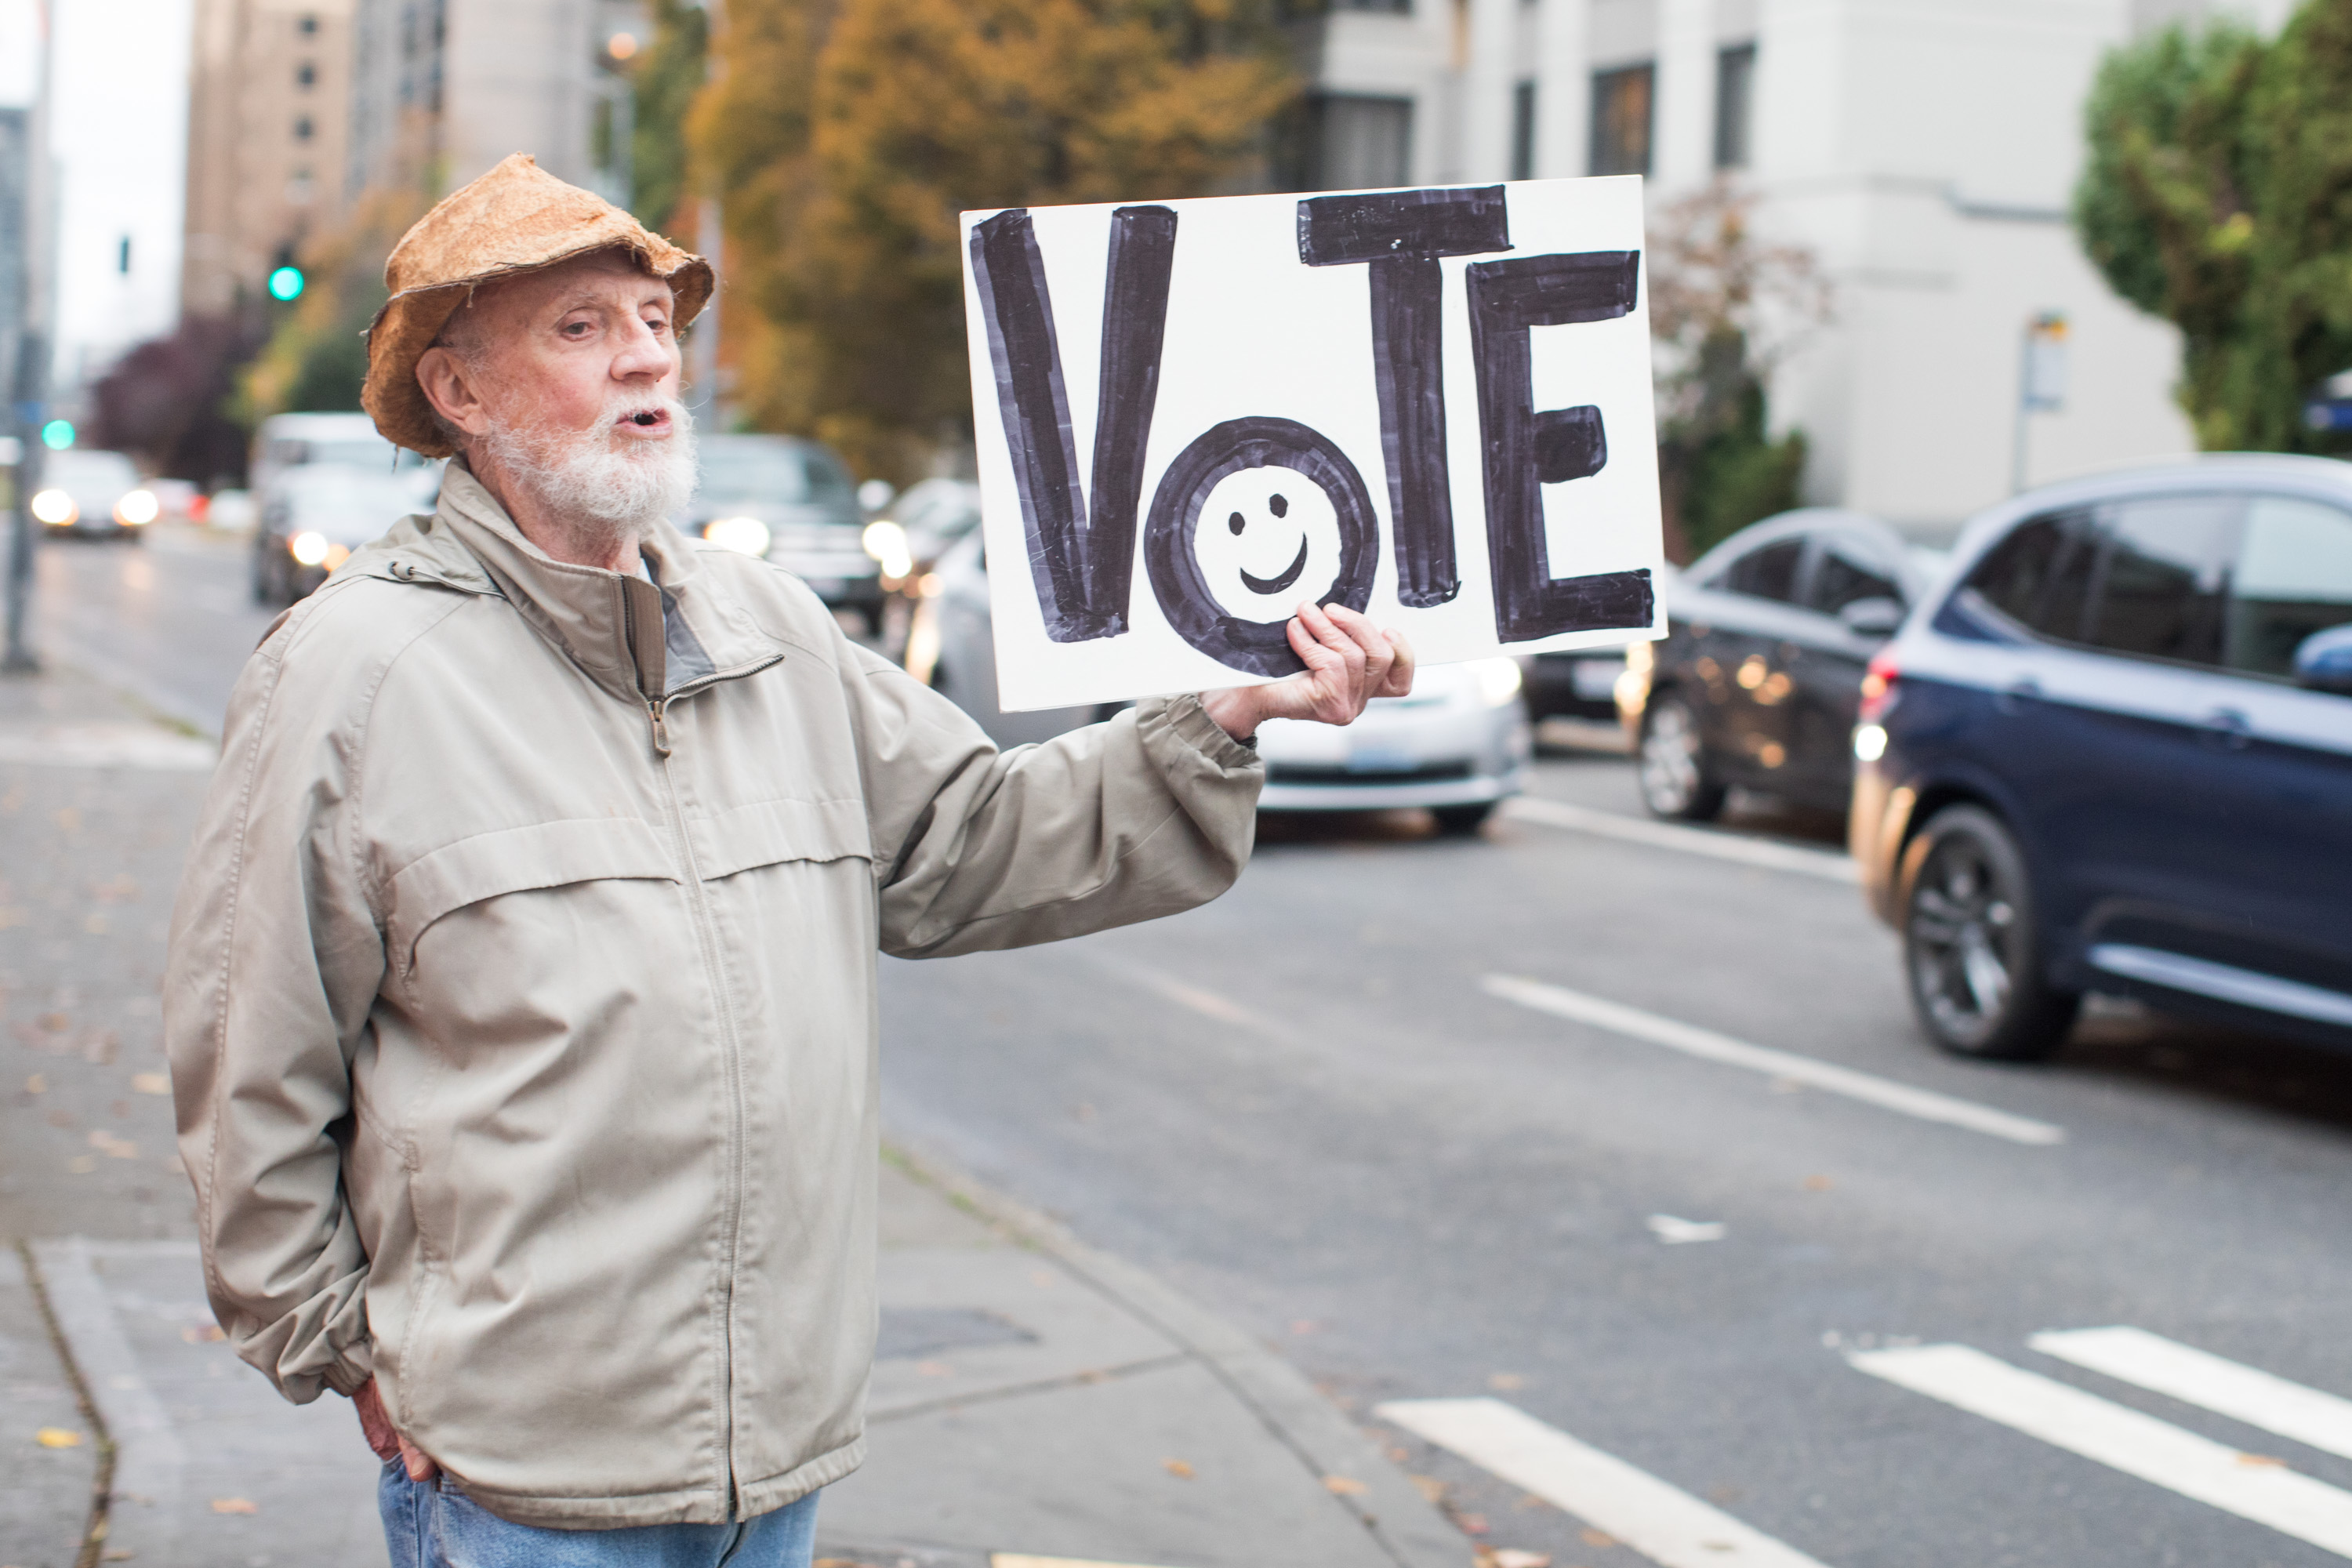 """A man holds a sign that reads """"VOTE"""" while standing on a sidewalk"""